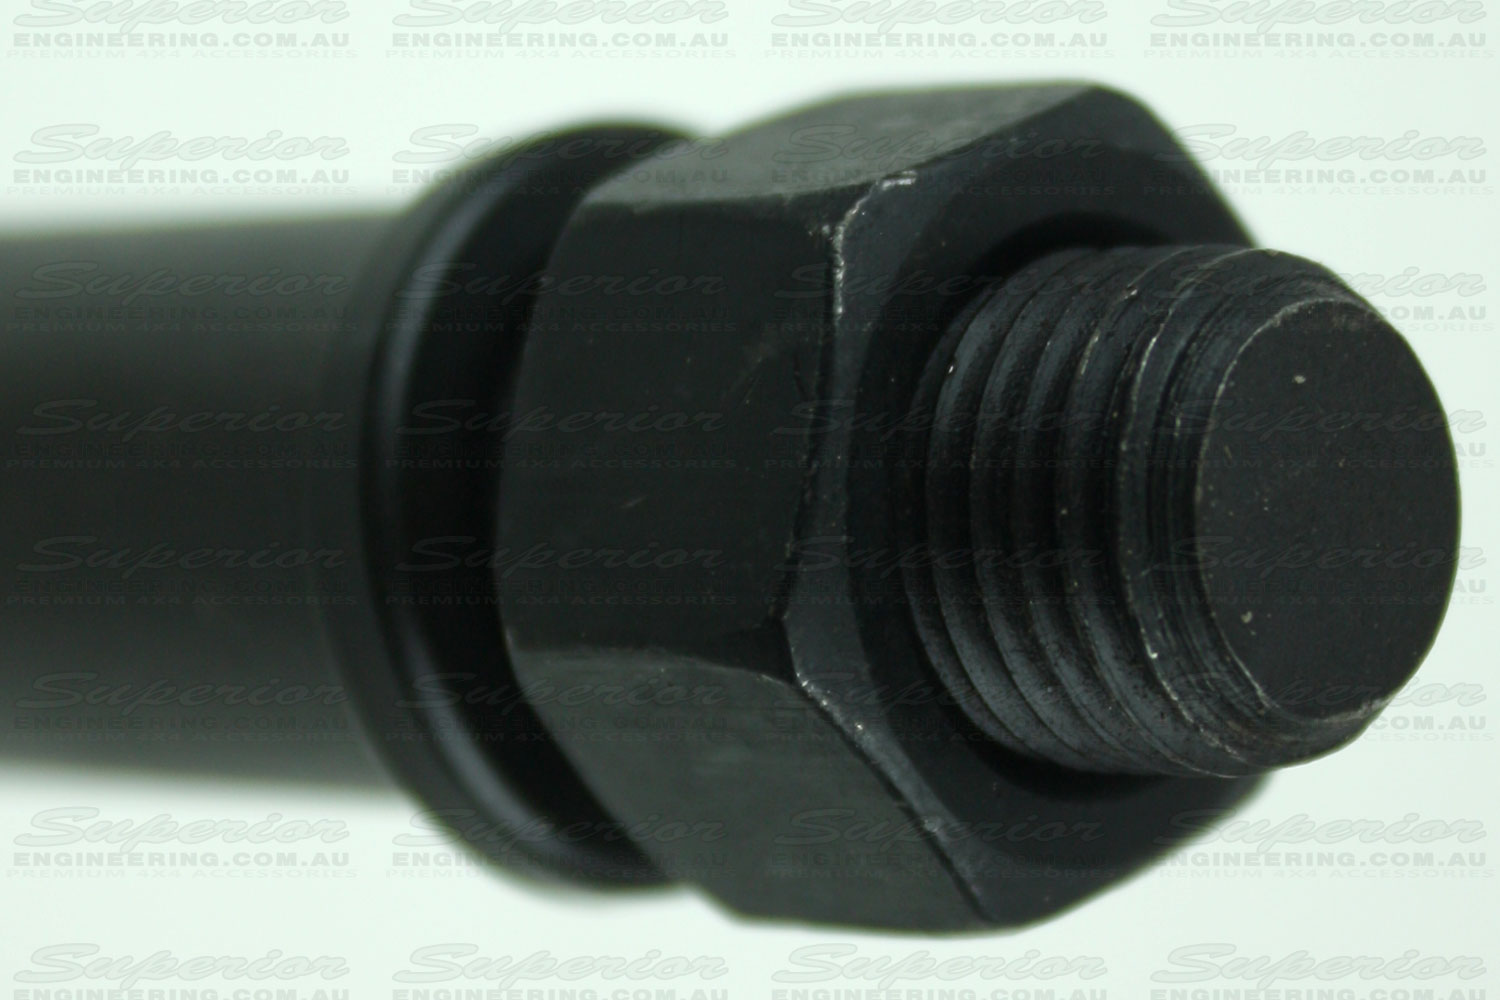 Closeup view of the main nut and washer on the fixed pin